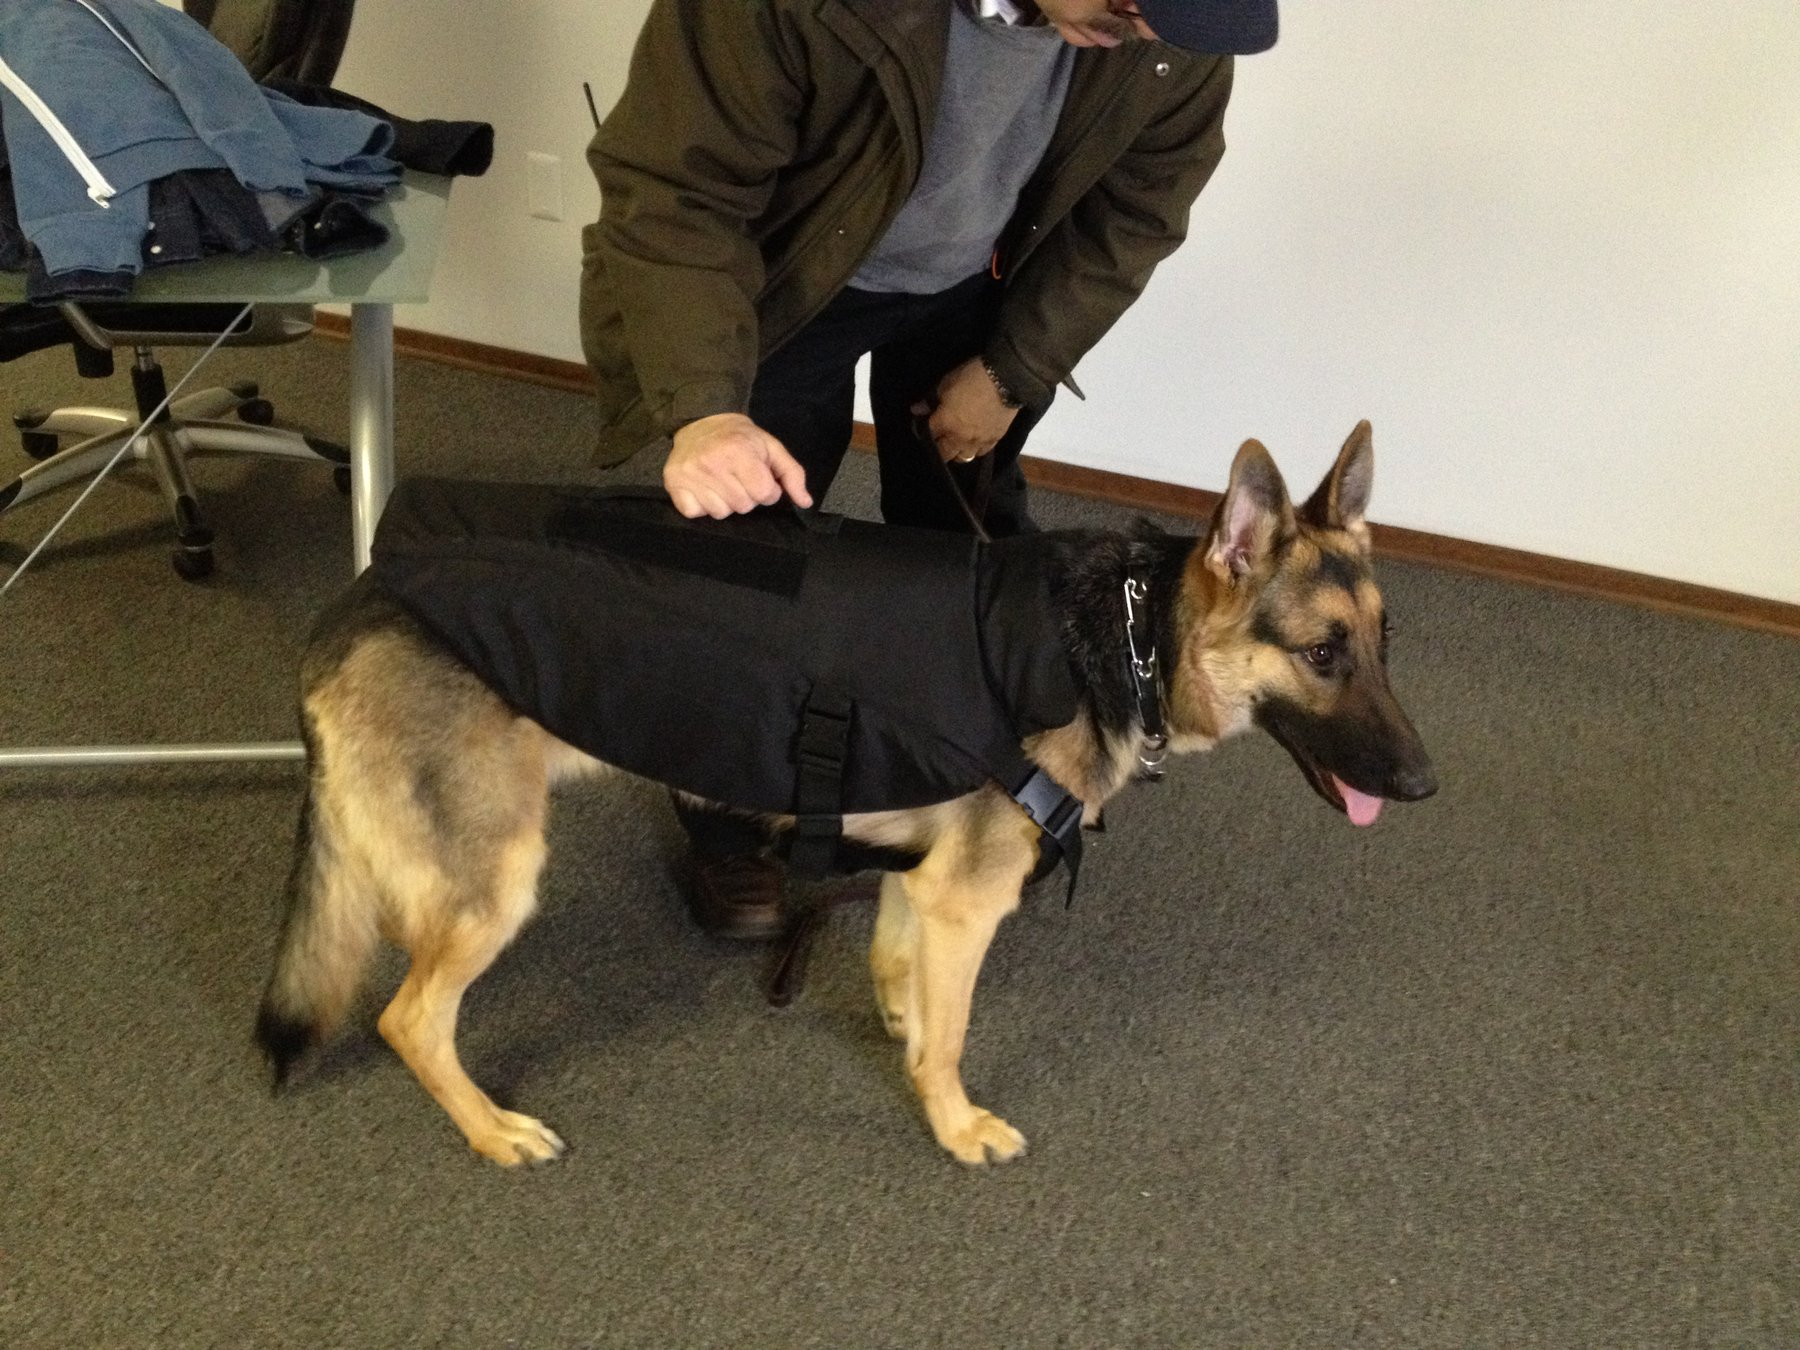 A man looking at a dog that's wearing a bulletproof vest